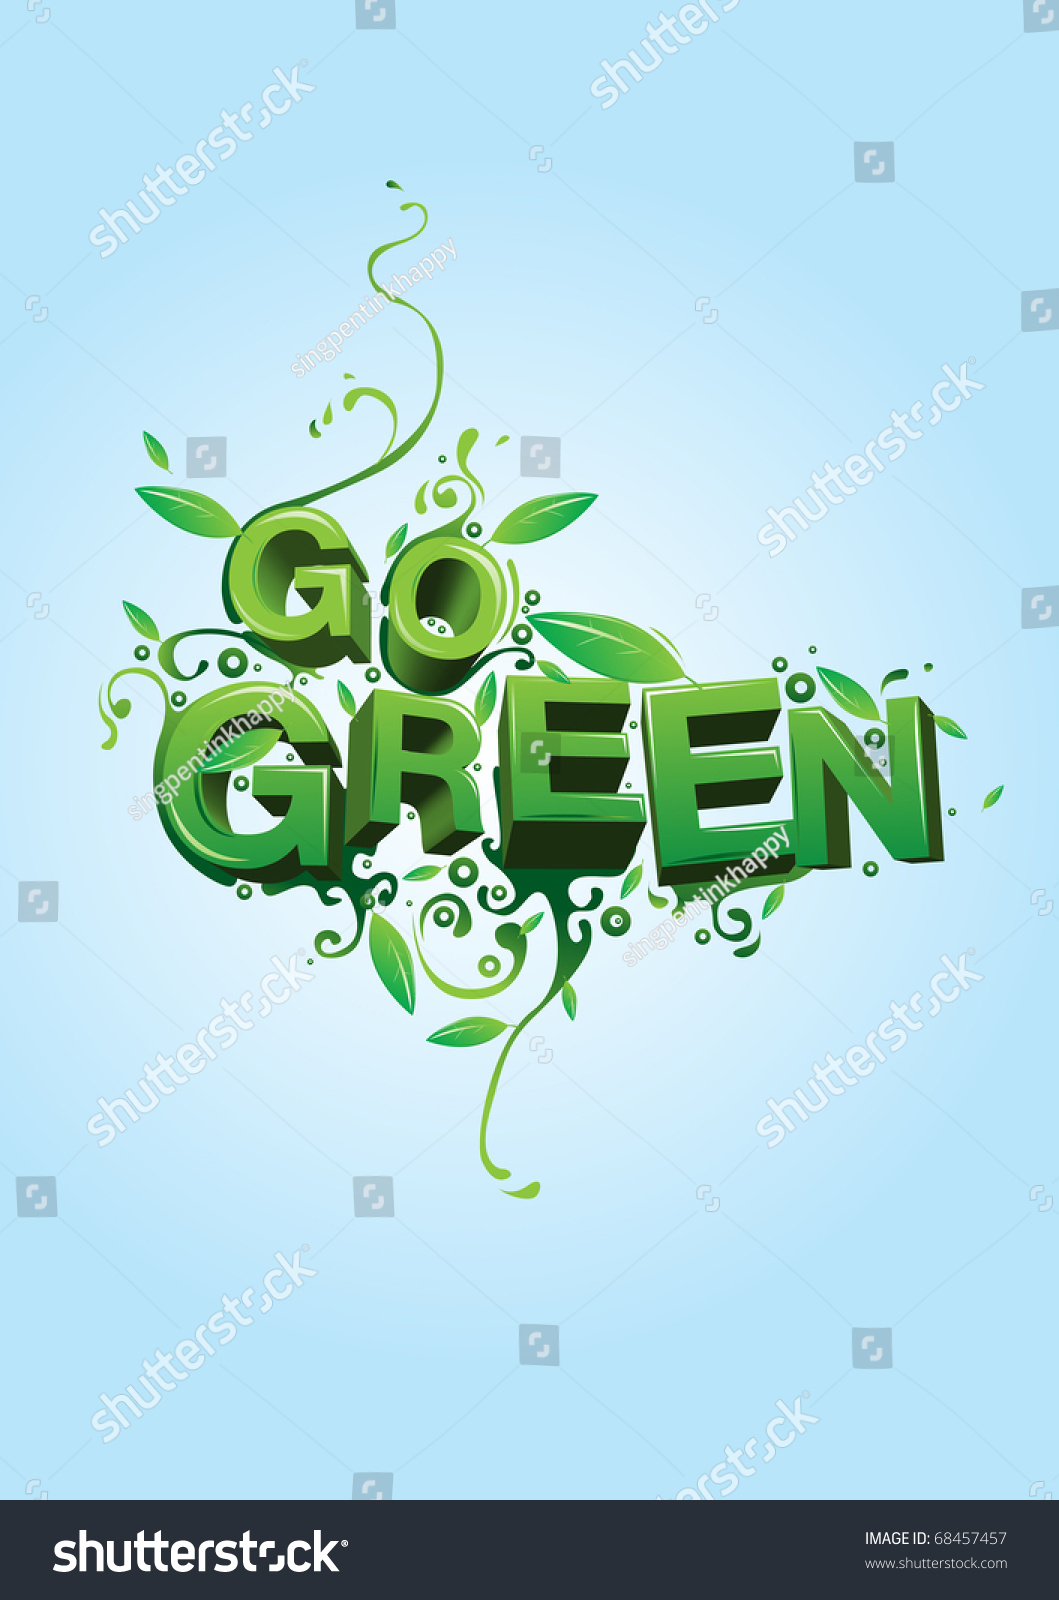 Go Green Campaign Poster Stock Vector Illustration